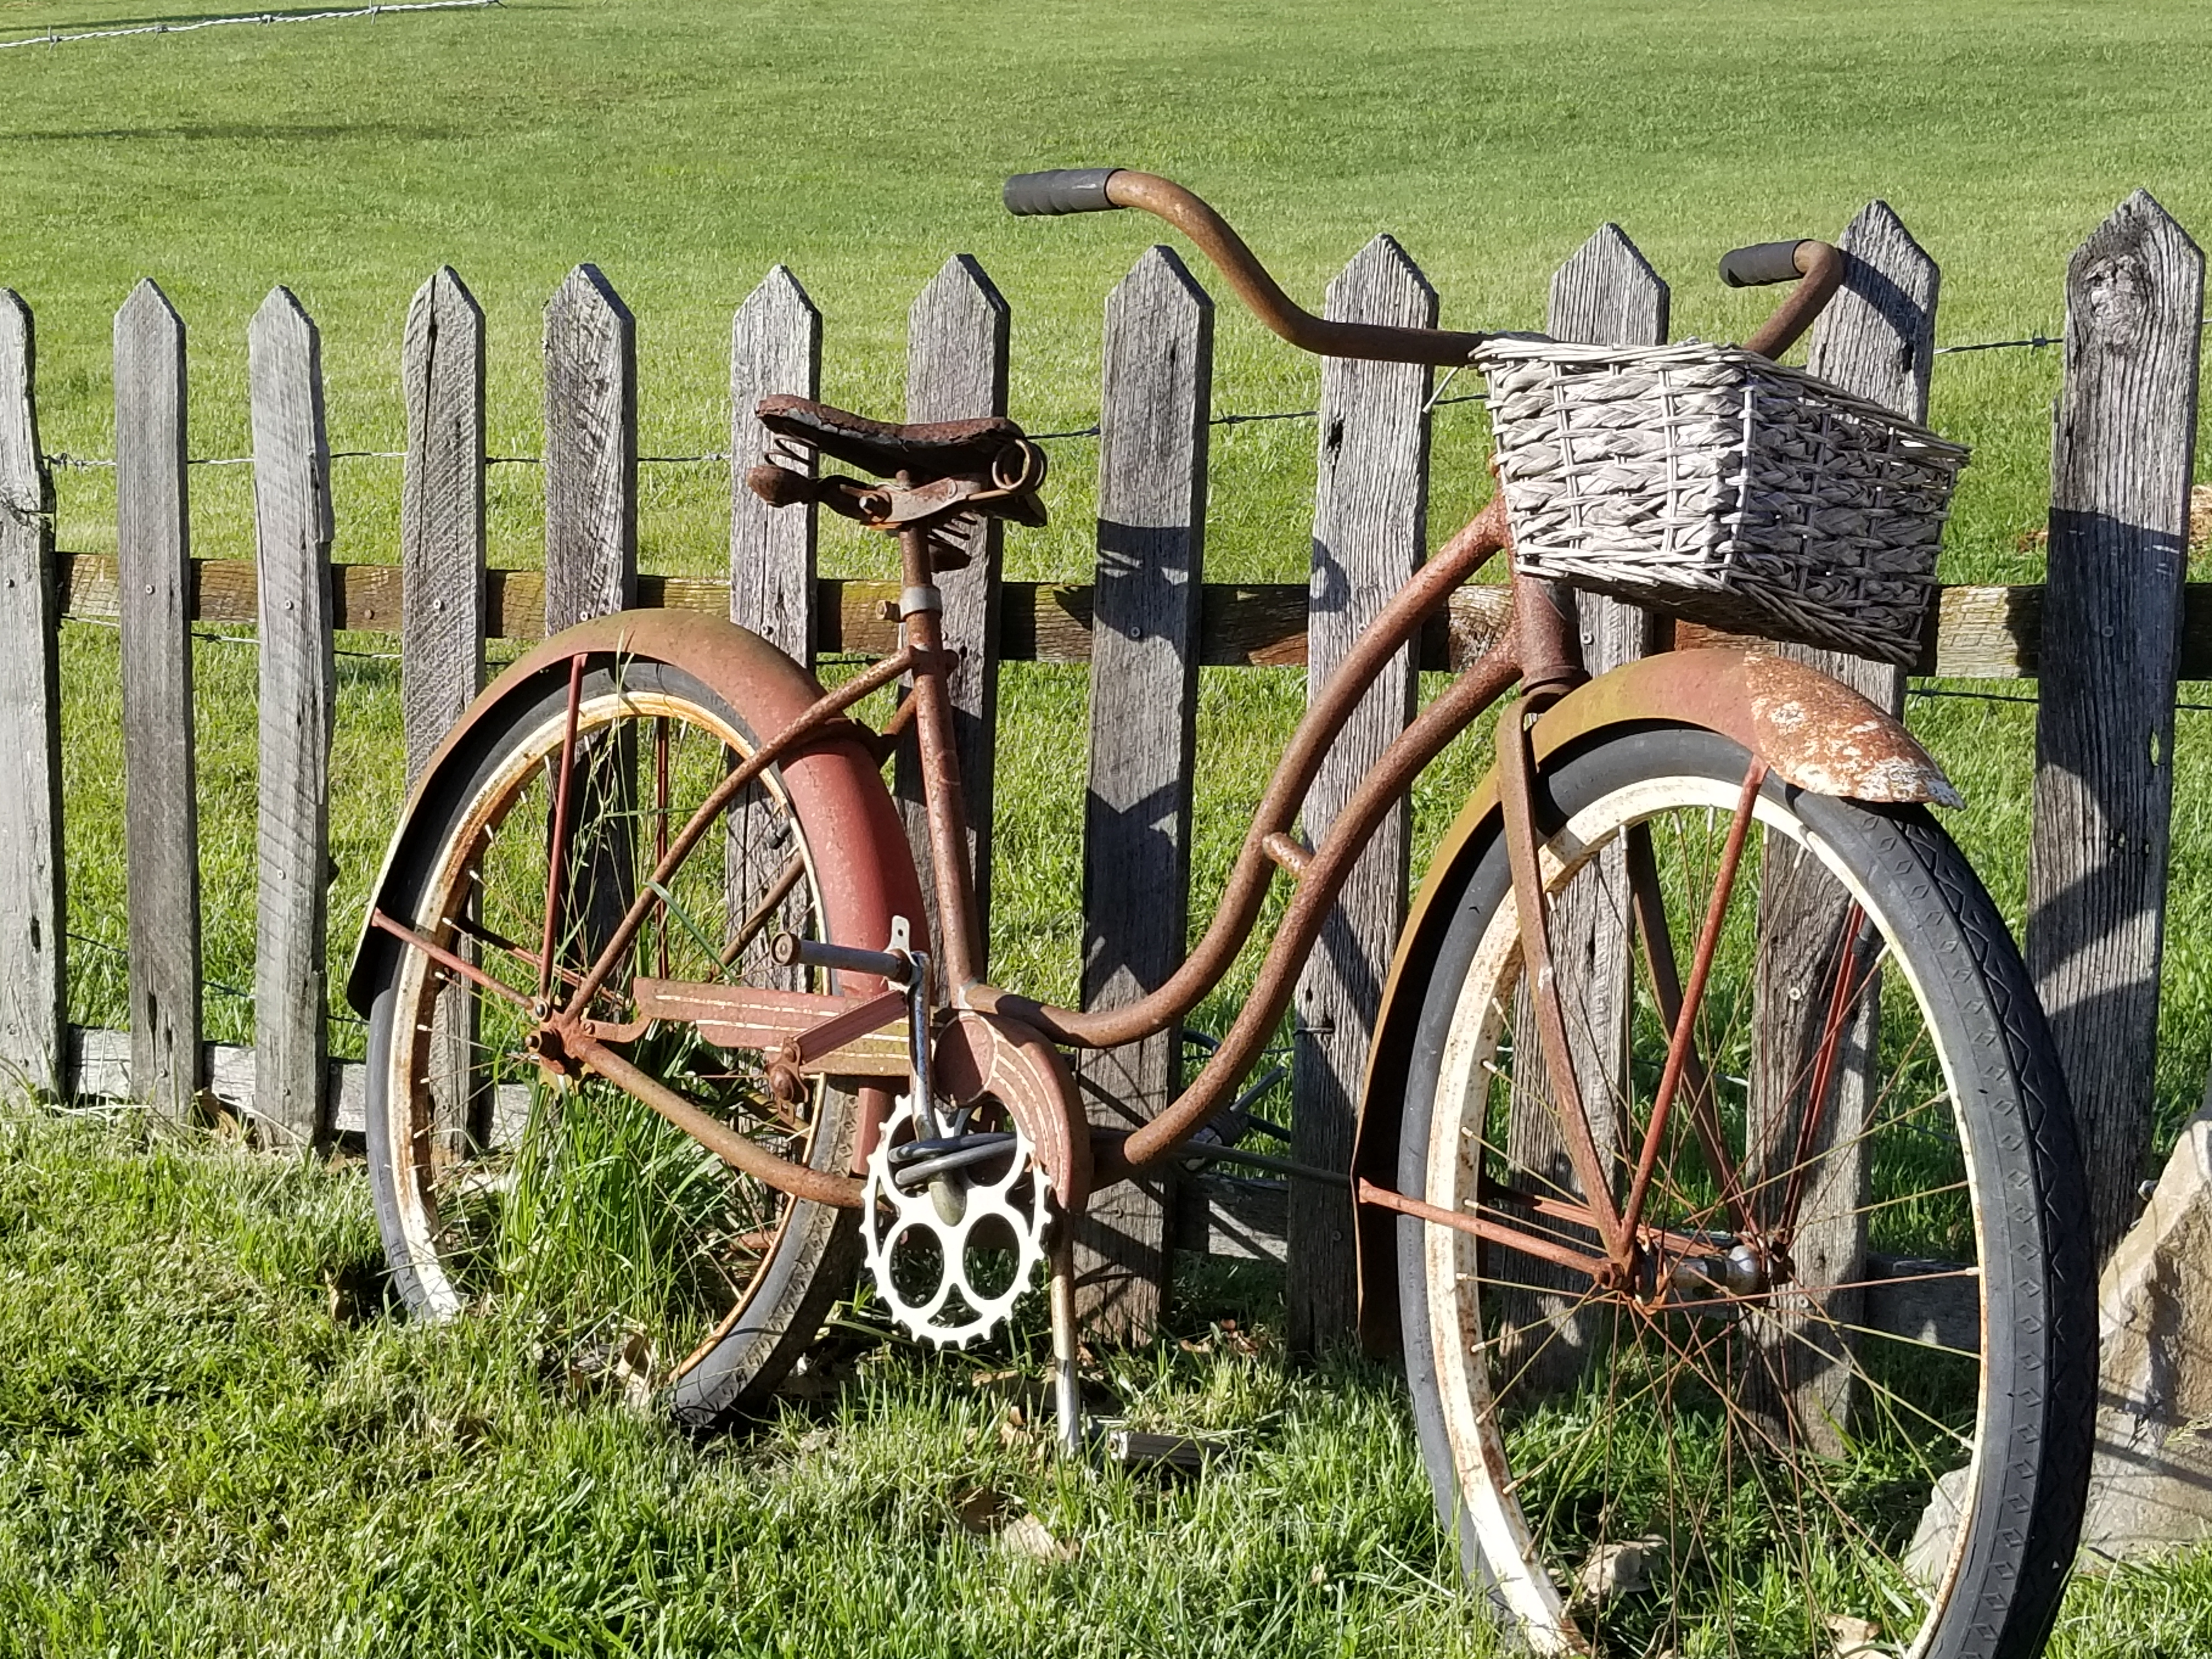 Bicycle and fence.jpg